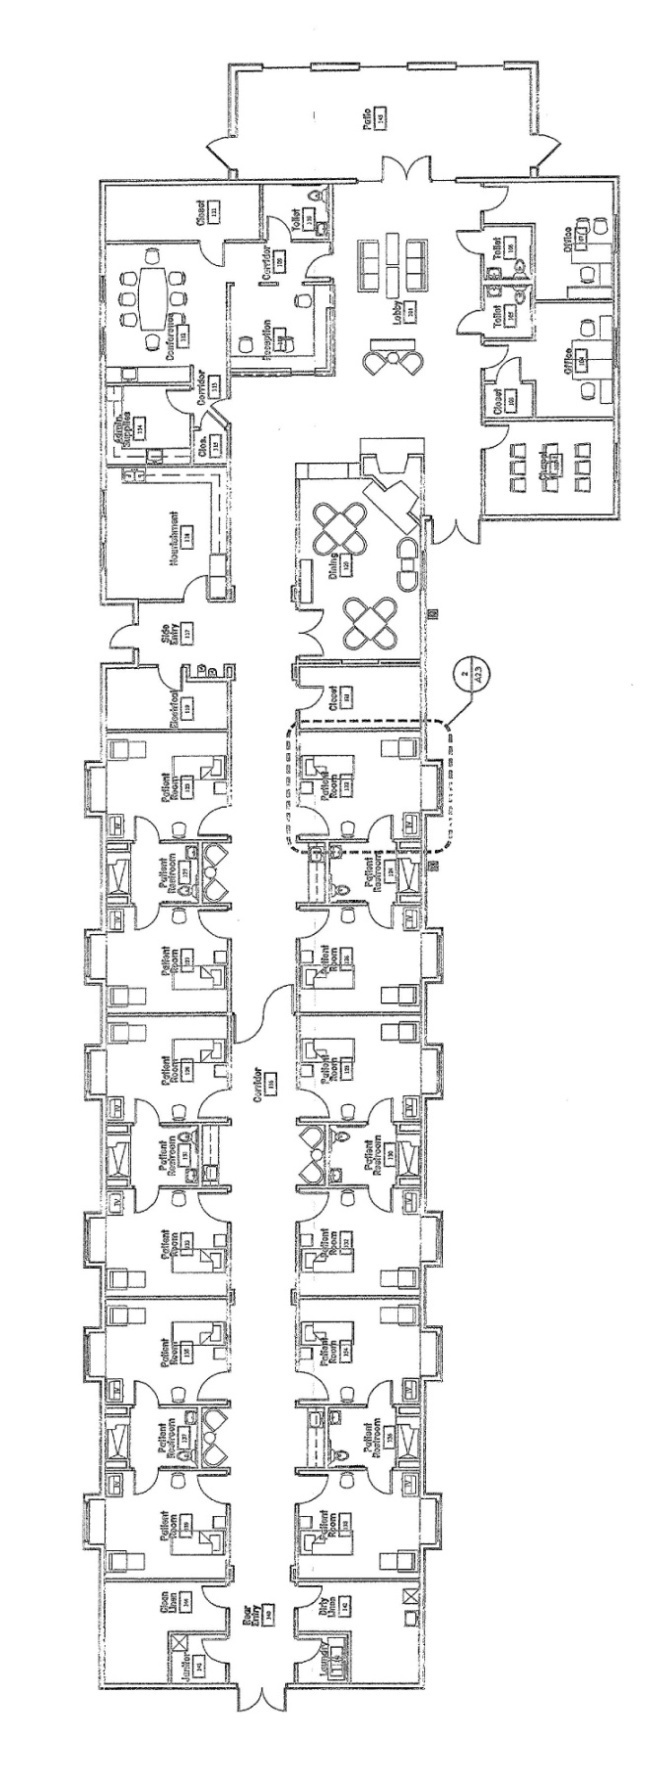 Section_image_floor_plan